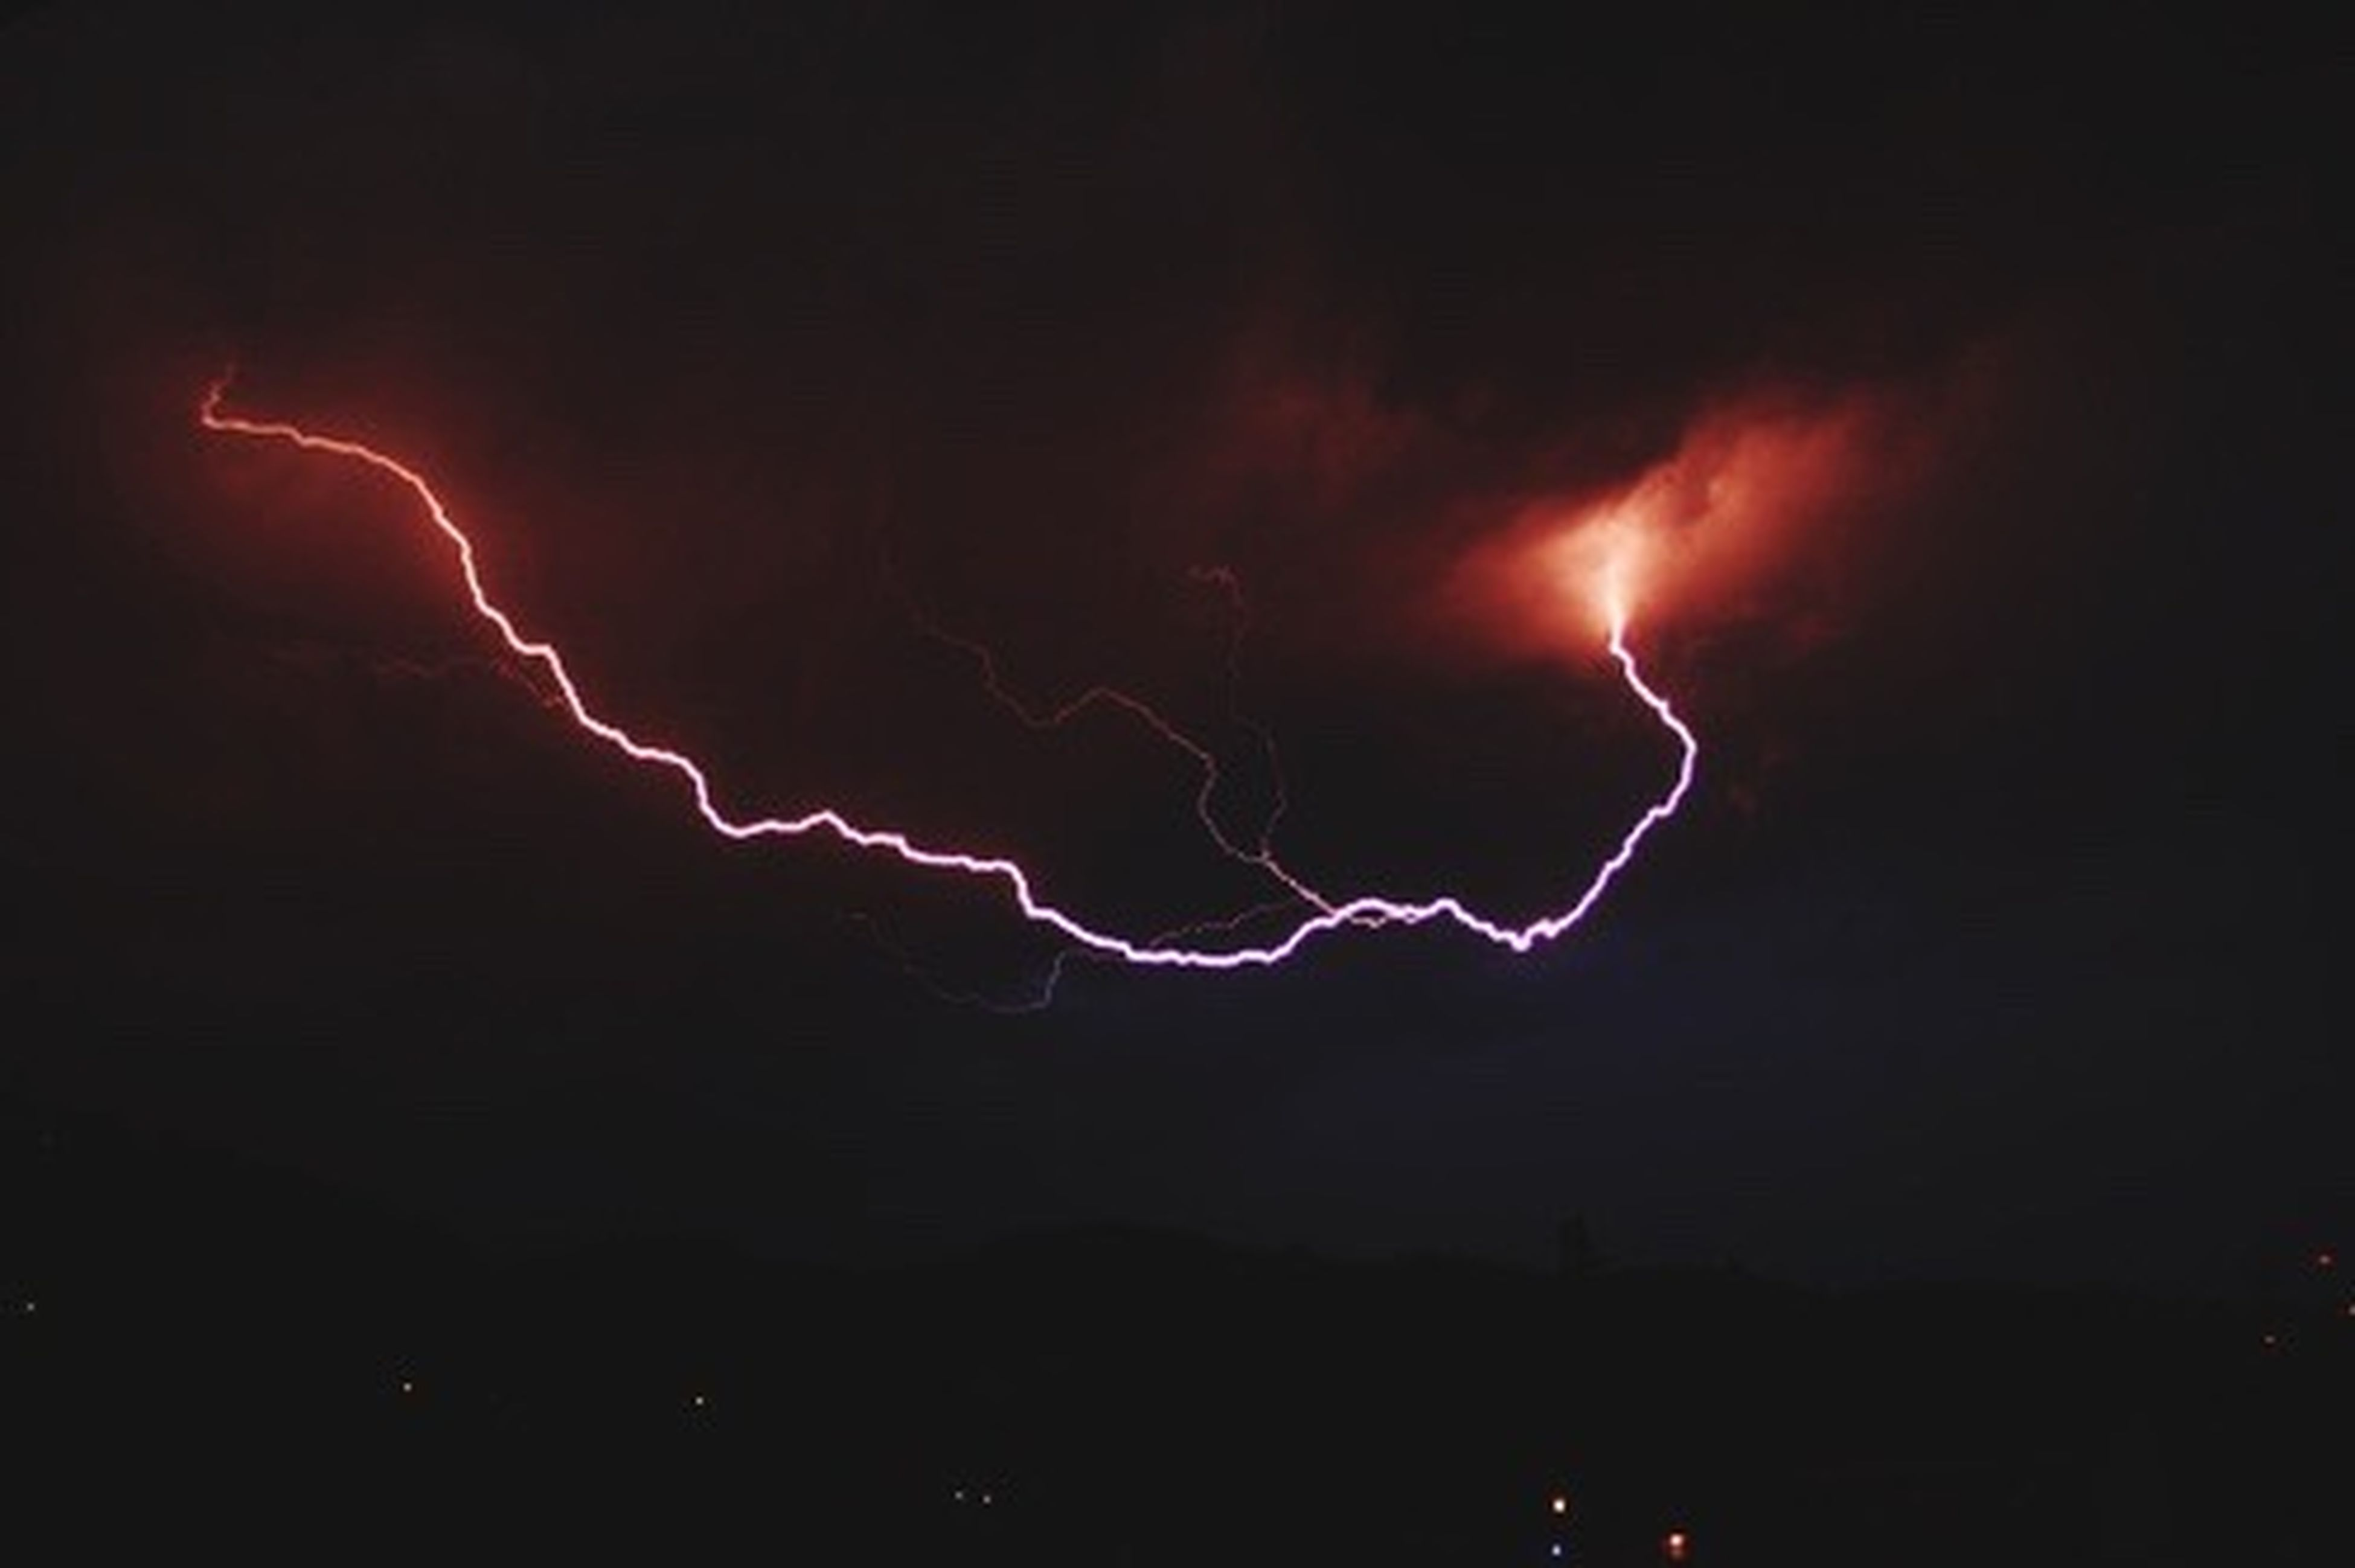 lightning, power in nature, storm, night, red, thunderstorm, electricity, no people, outdoors, nature, forked lightning